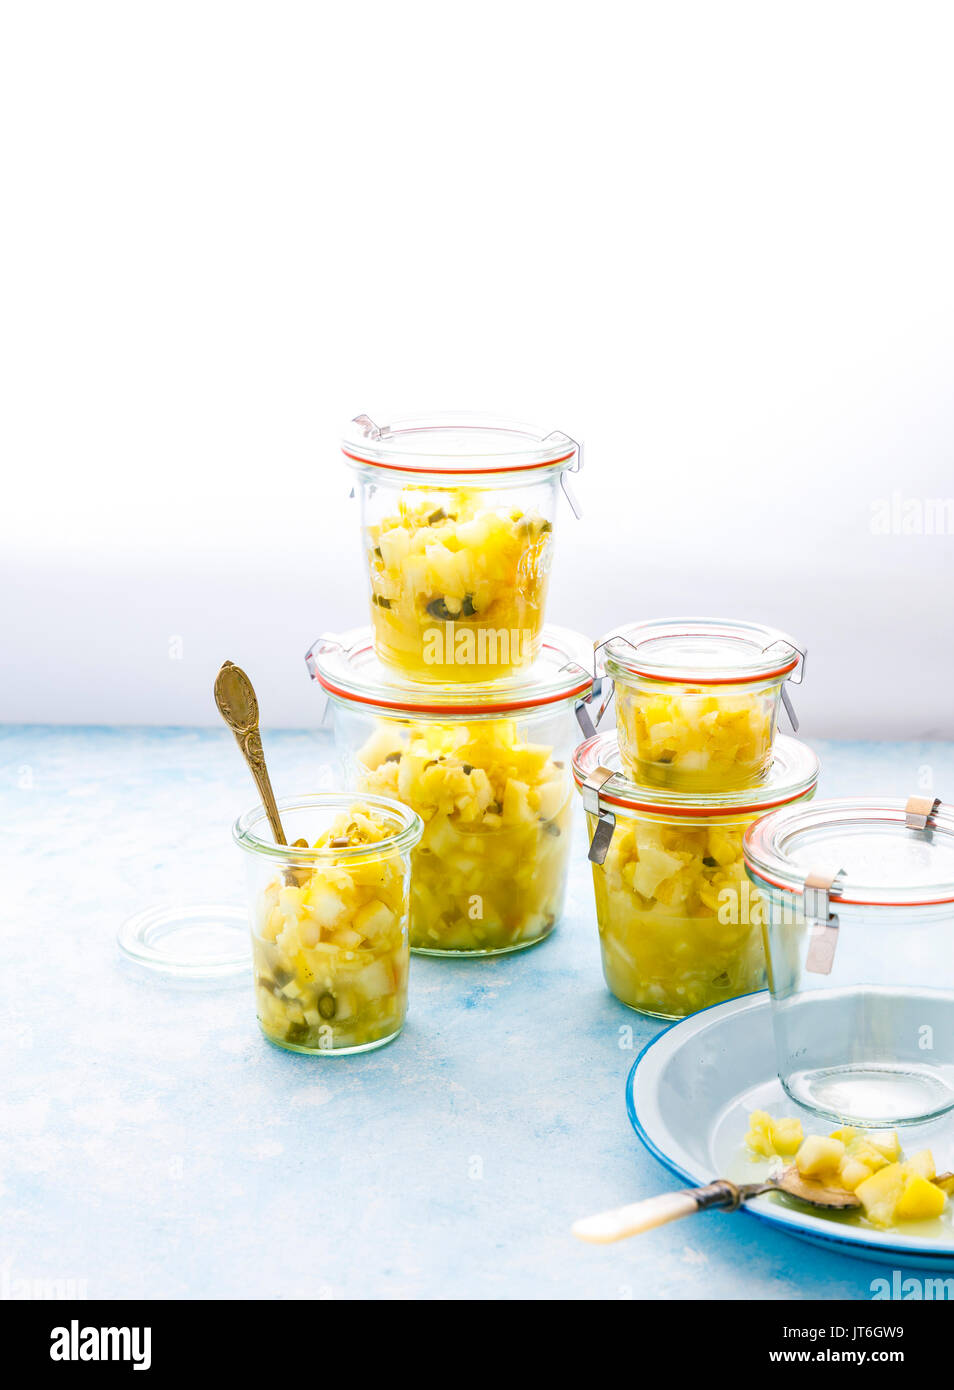 Instant Lemon Pickle  made with Lemon, Ginger, Green Chillies and Salt - Stock Image